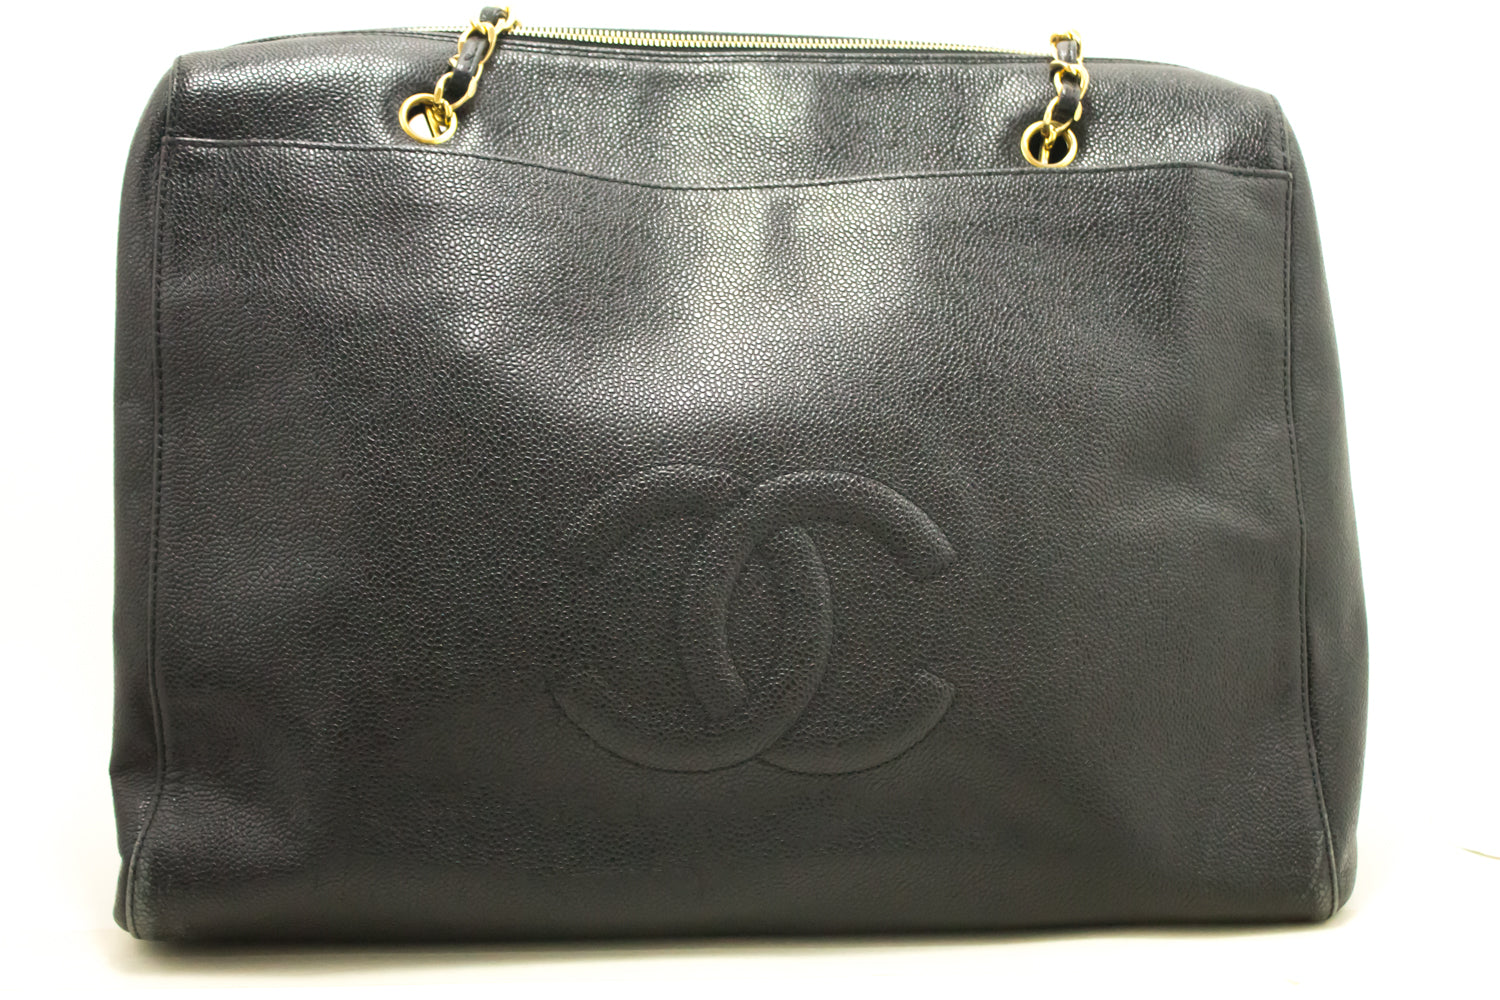 fdfaacda9eac ... CHANEL Caviar Jumbo Large Chain Shoulder Bag Black Zip Leather CC 849- Chanel Boutique- ...